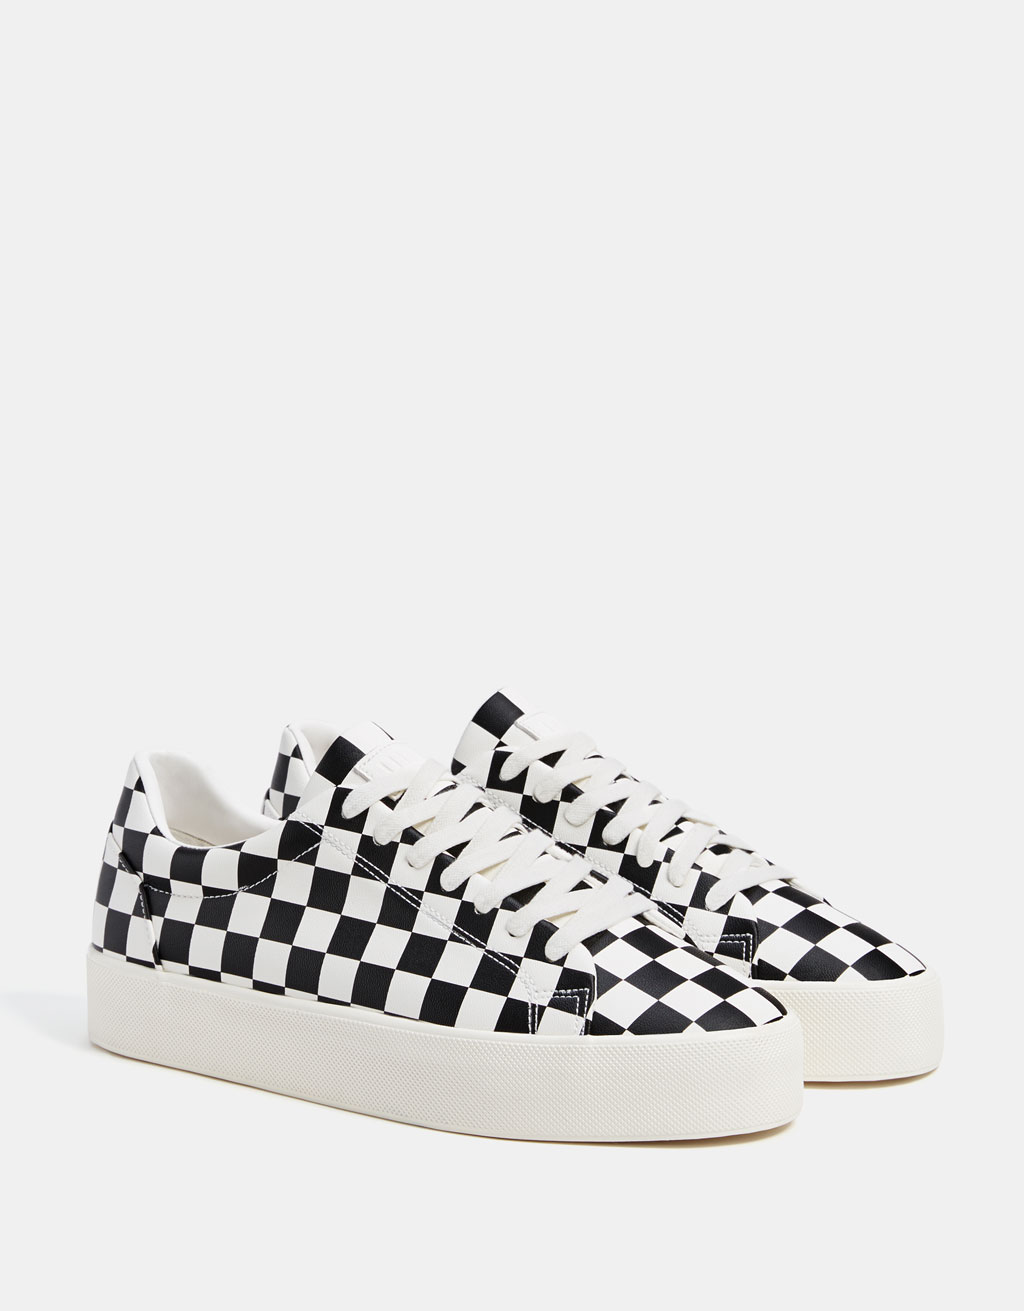 Men's checked sneakers